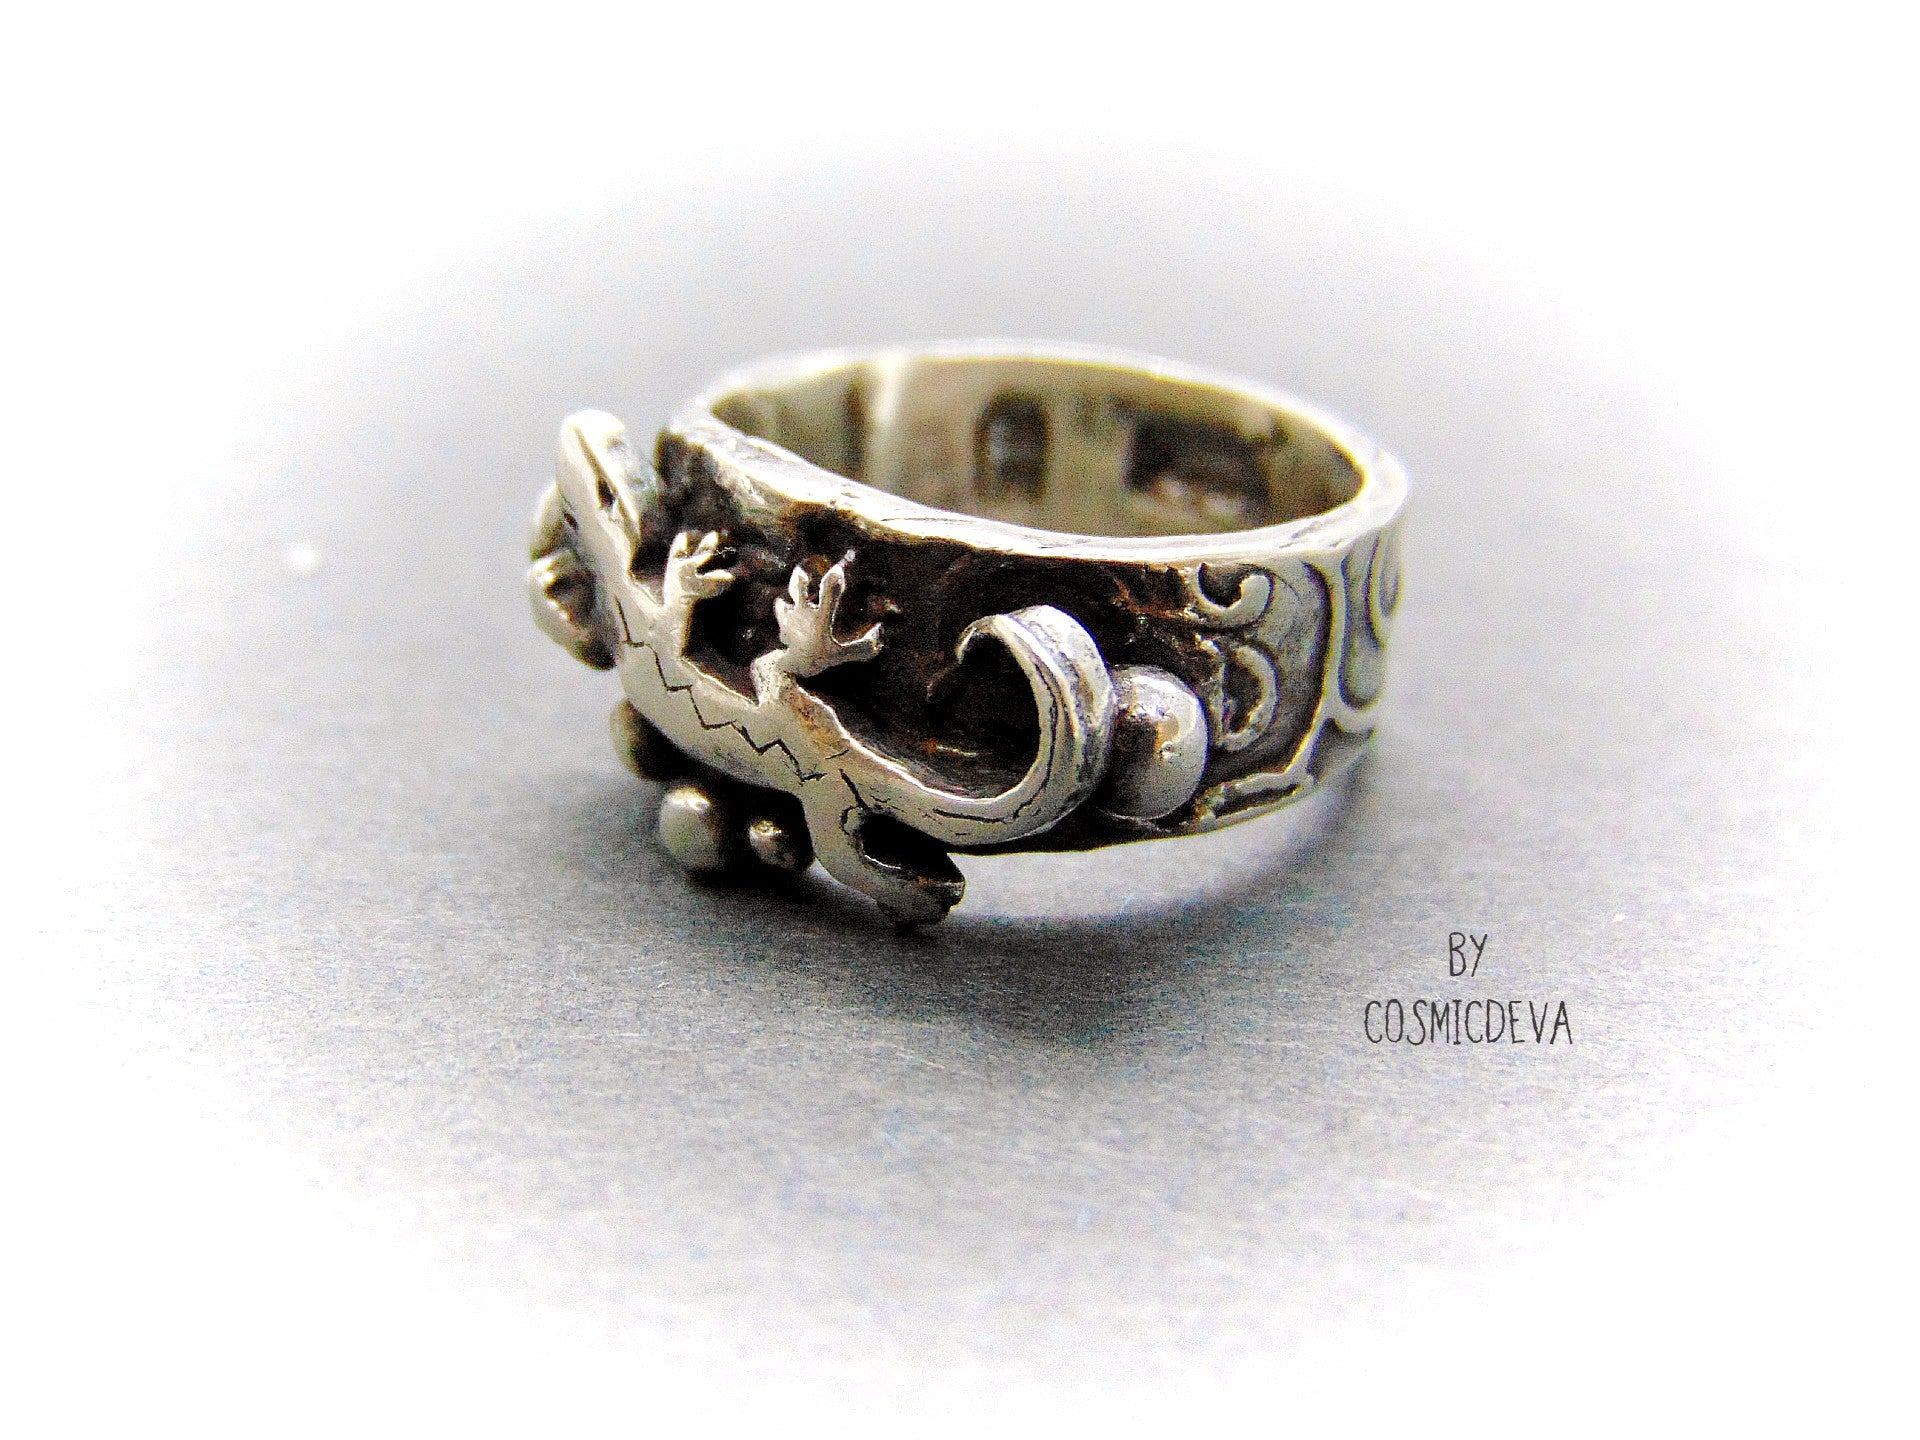 Lizard Gecko Sterling Silver Ring, Reptile Jewelry, US Size 6 Ring